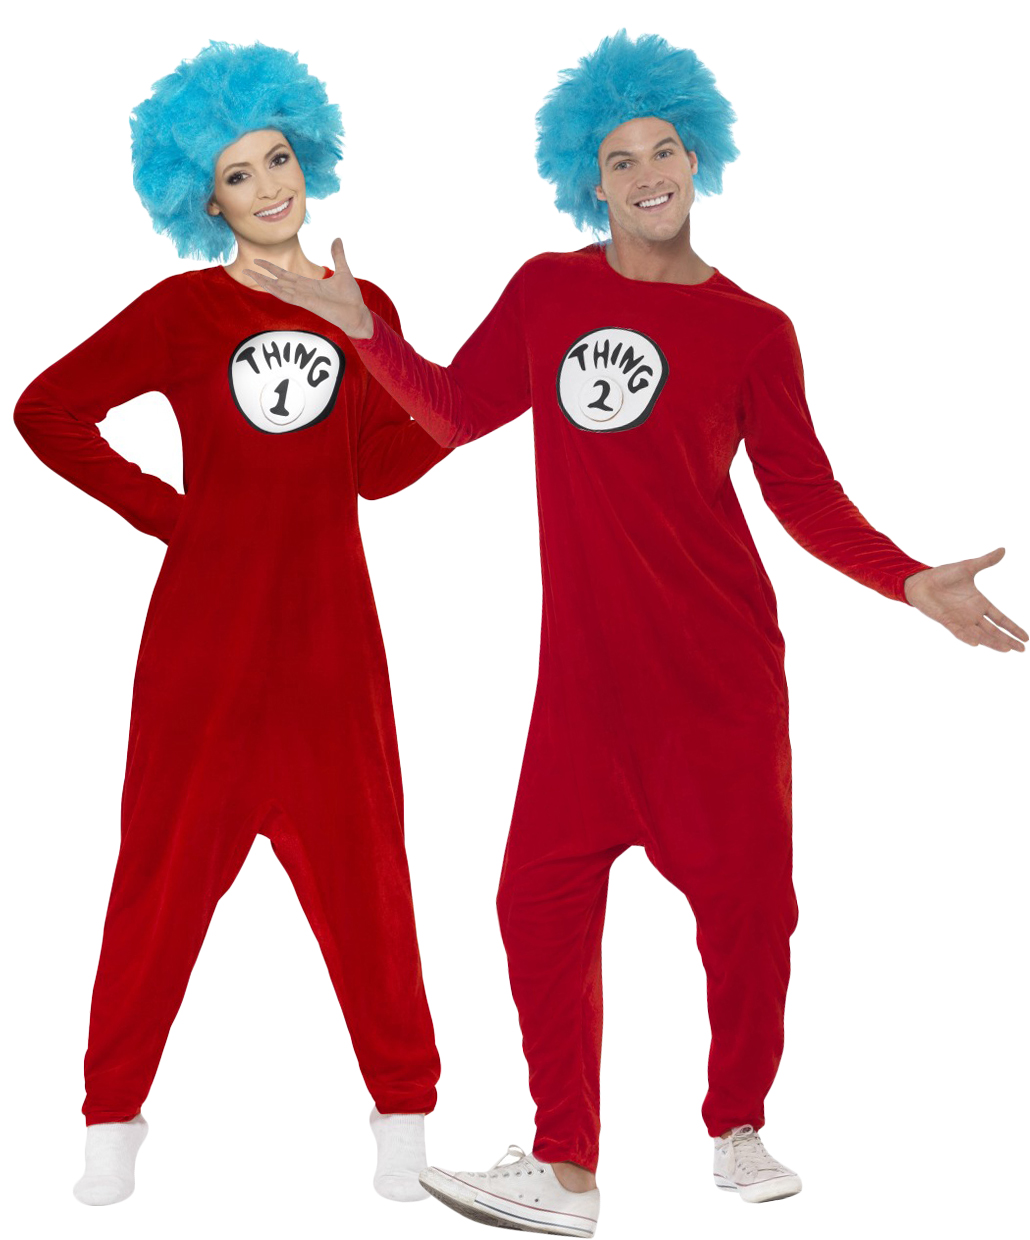 Thing 1 or Thing 2 Adults Costume  8c4897e6d